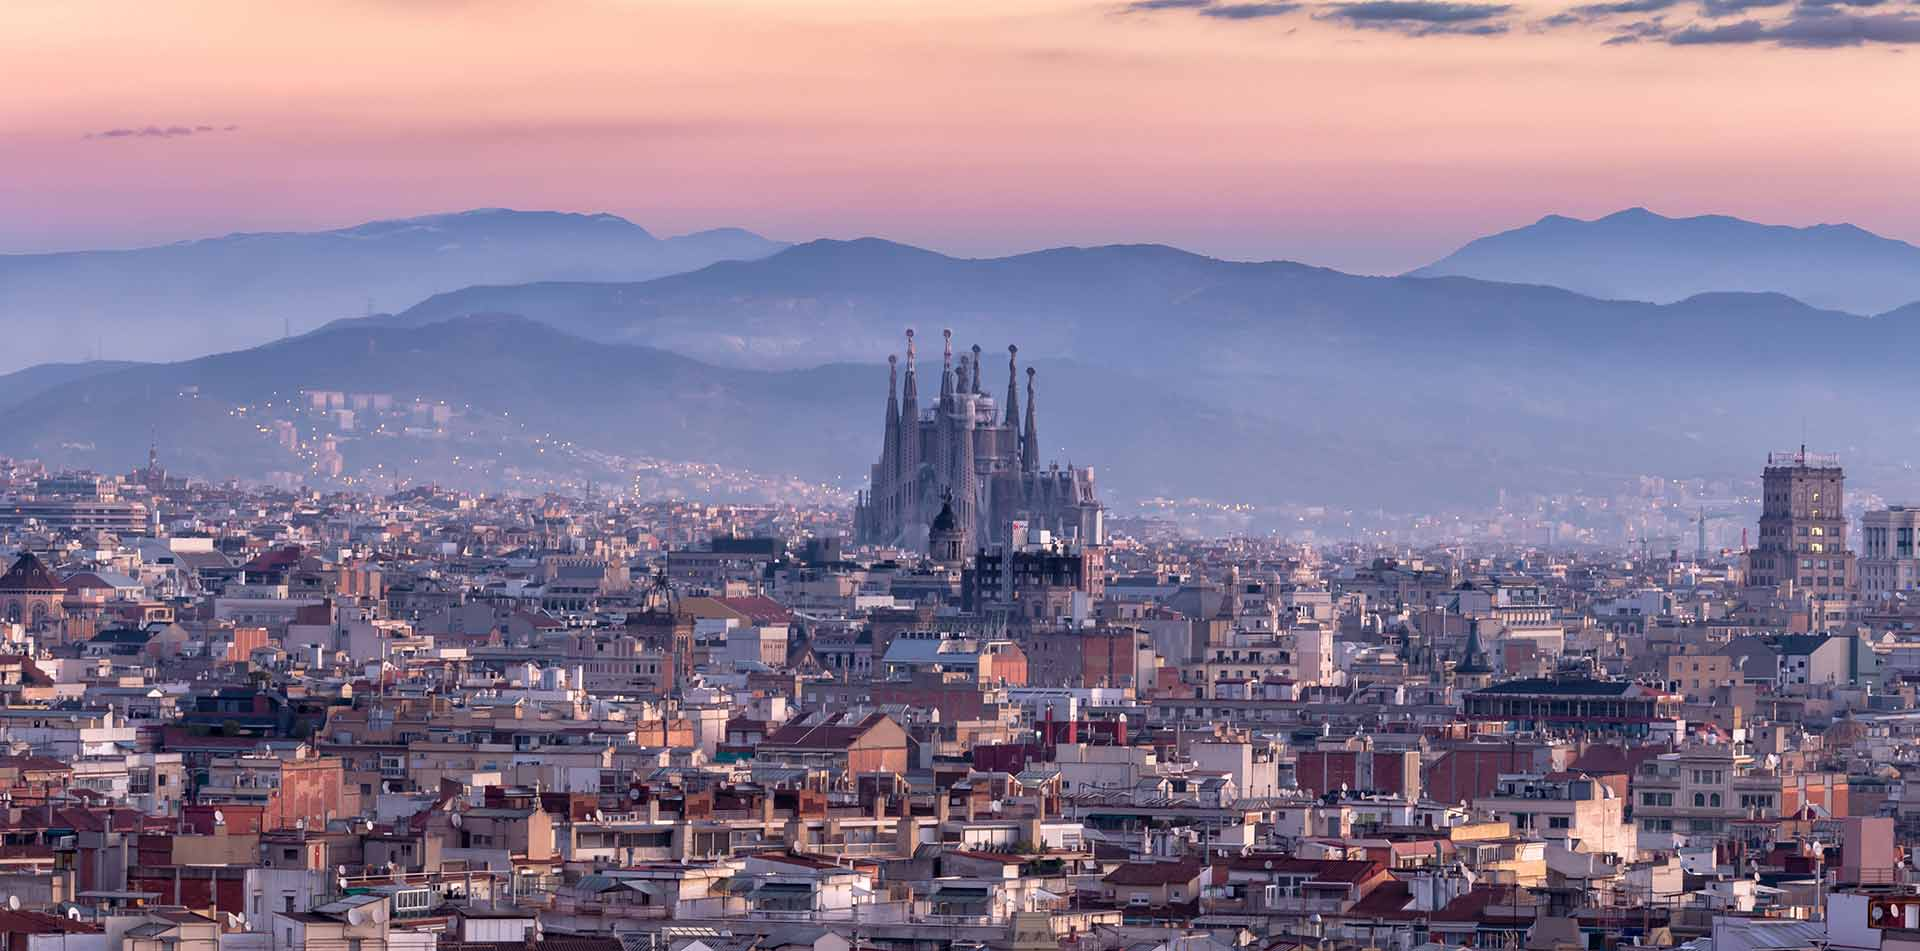 City view of Barcelona, Spain